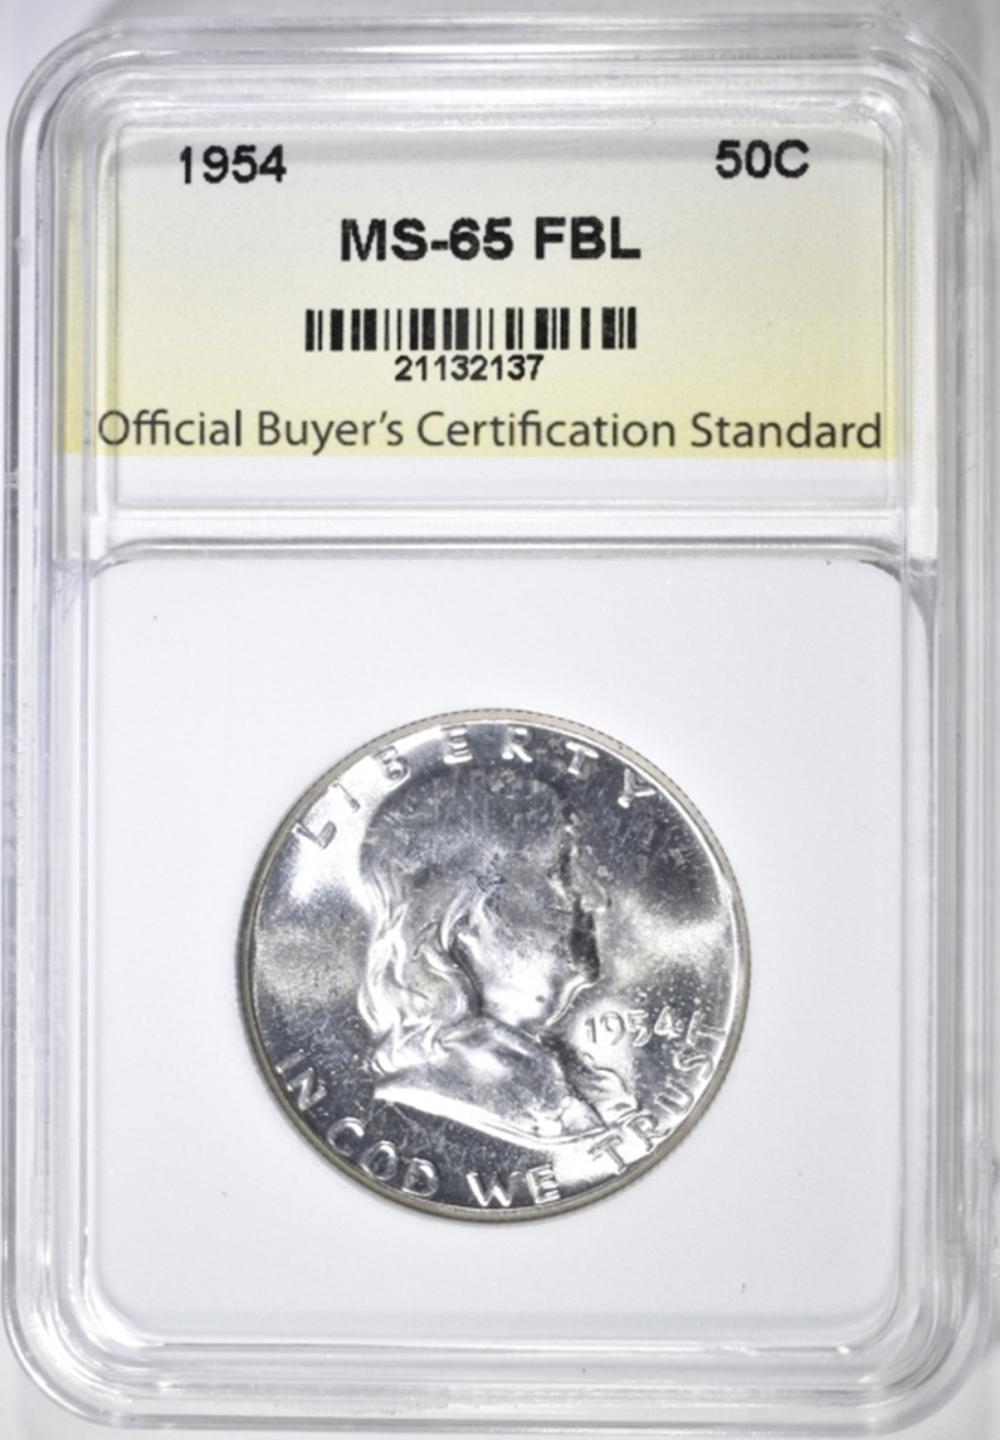 Lot 29: 1954 FRANKLIN HALF DOLLAR, OBCS GEM BU FBL